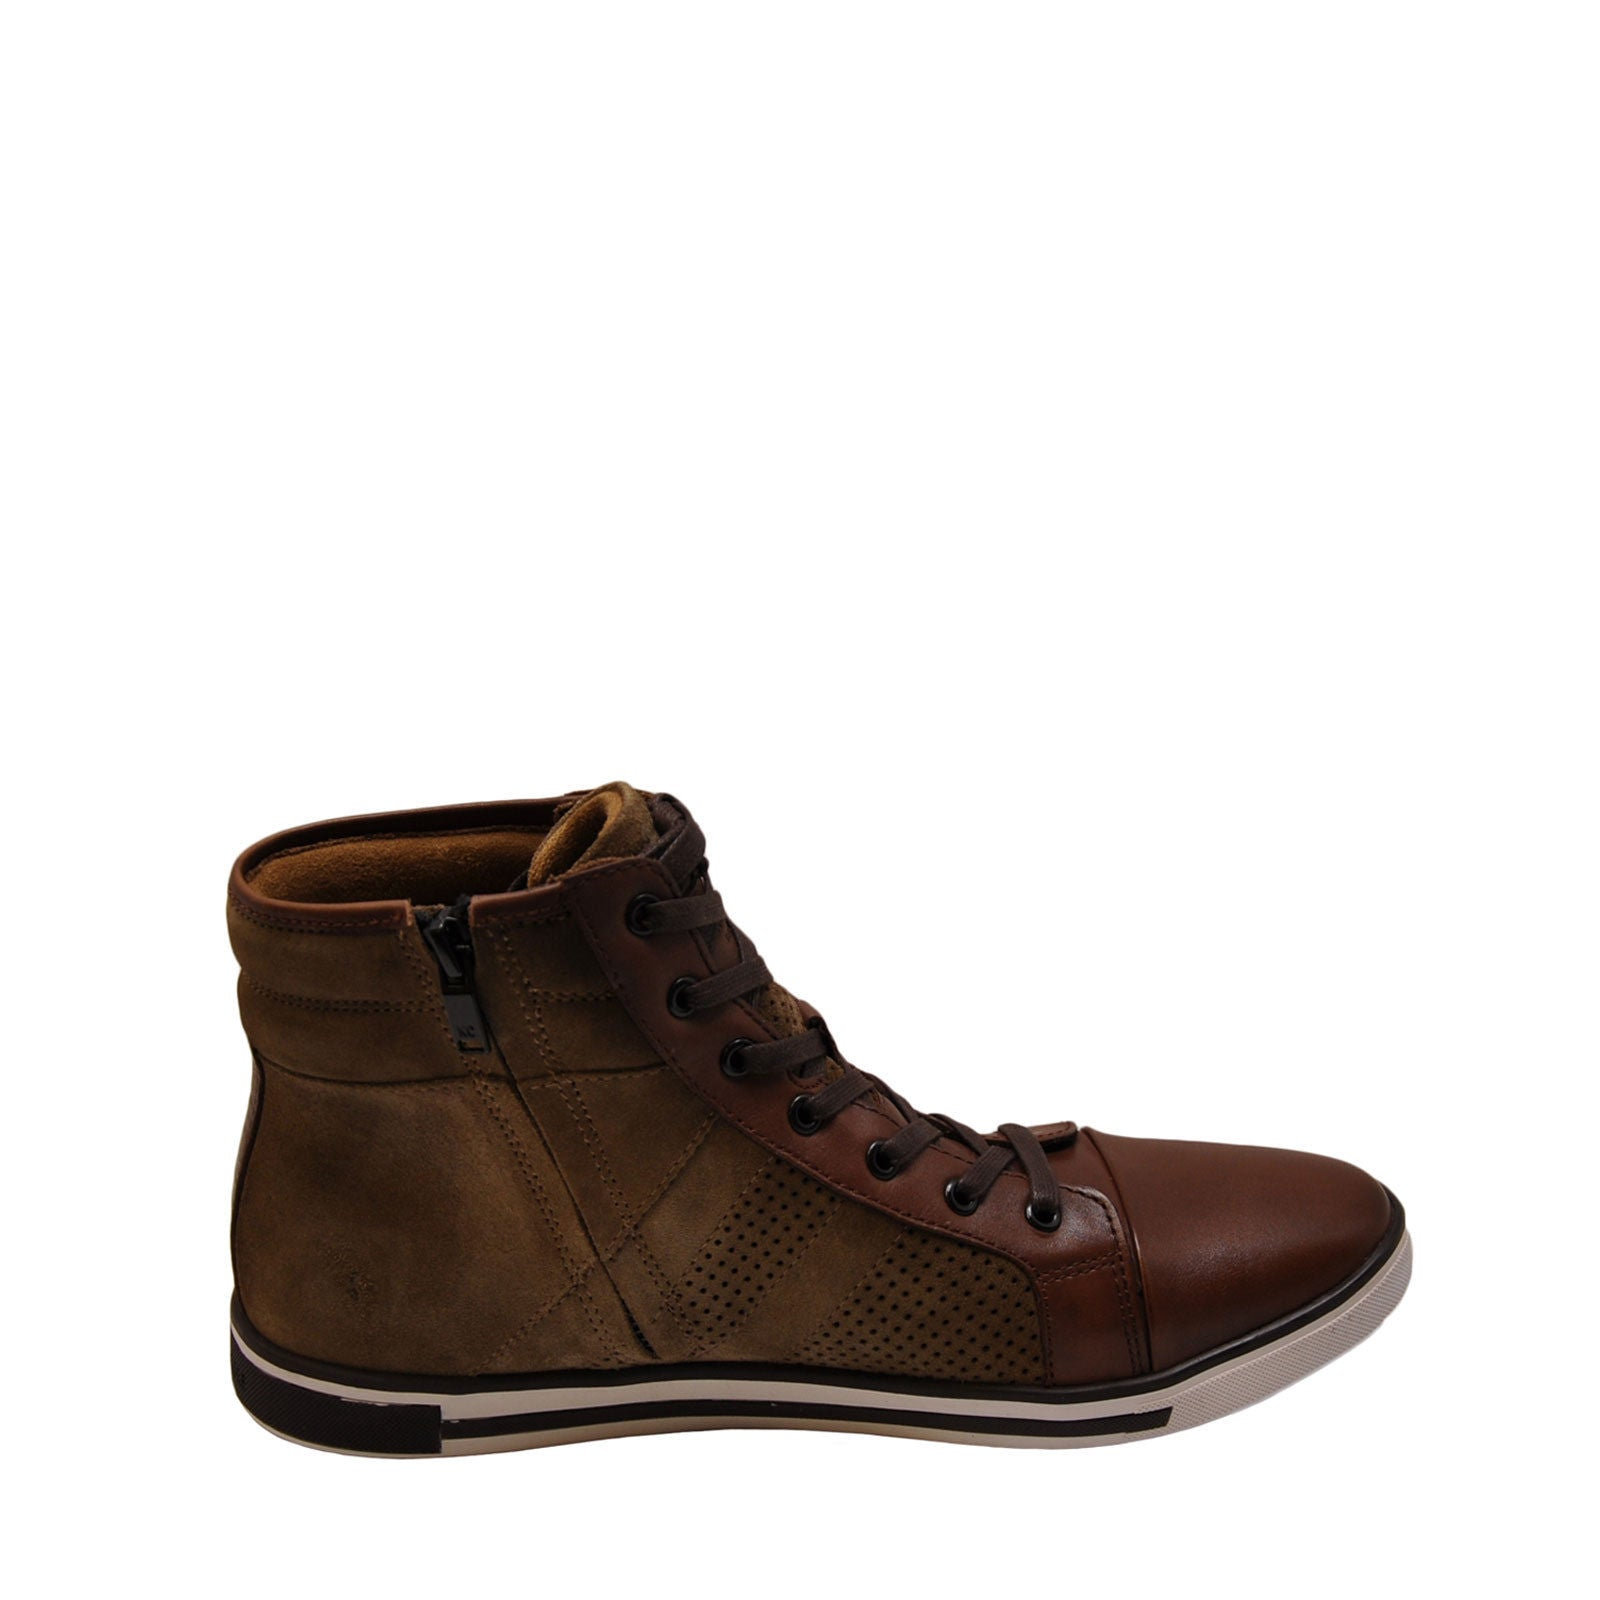 Kenneth Cole Men's Initial Point -Brown